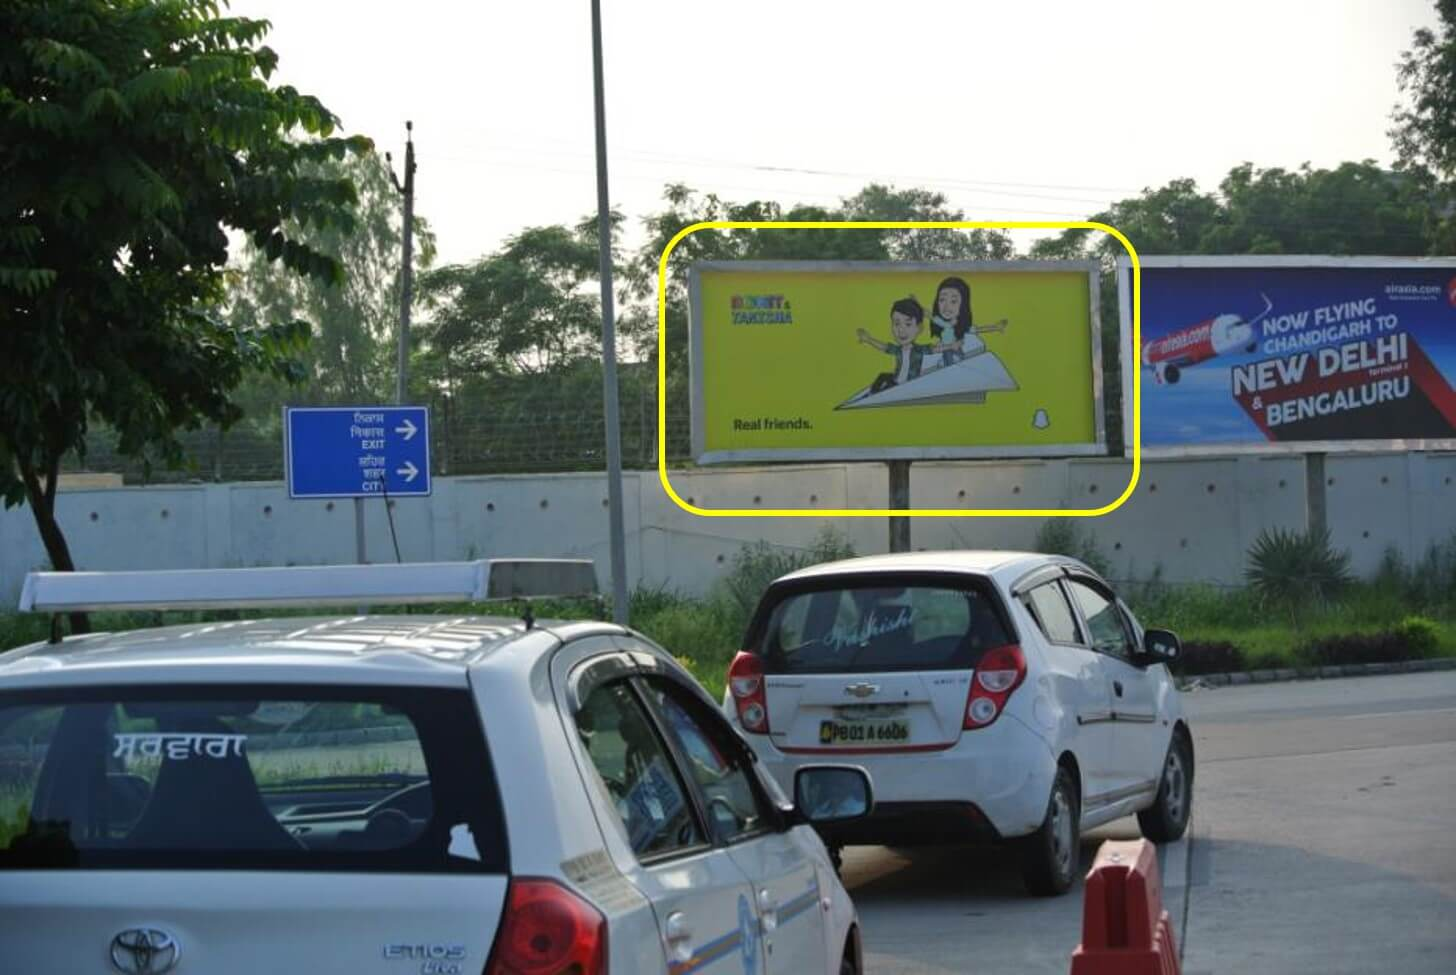 Option No.2 Outdoor Unipole Advertising at Domestic & International Arrivals, Chandigarh International Airport